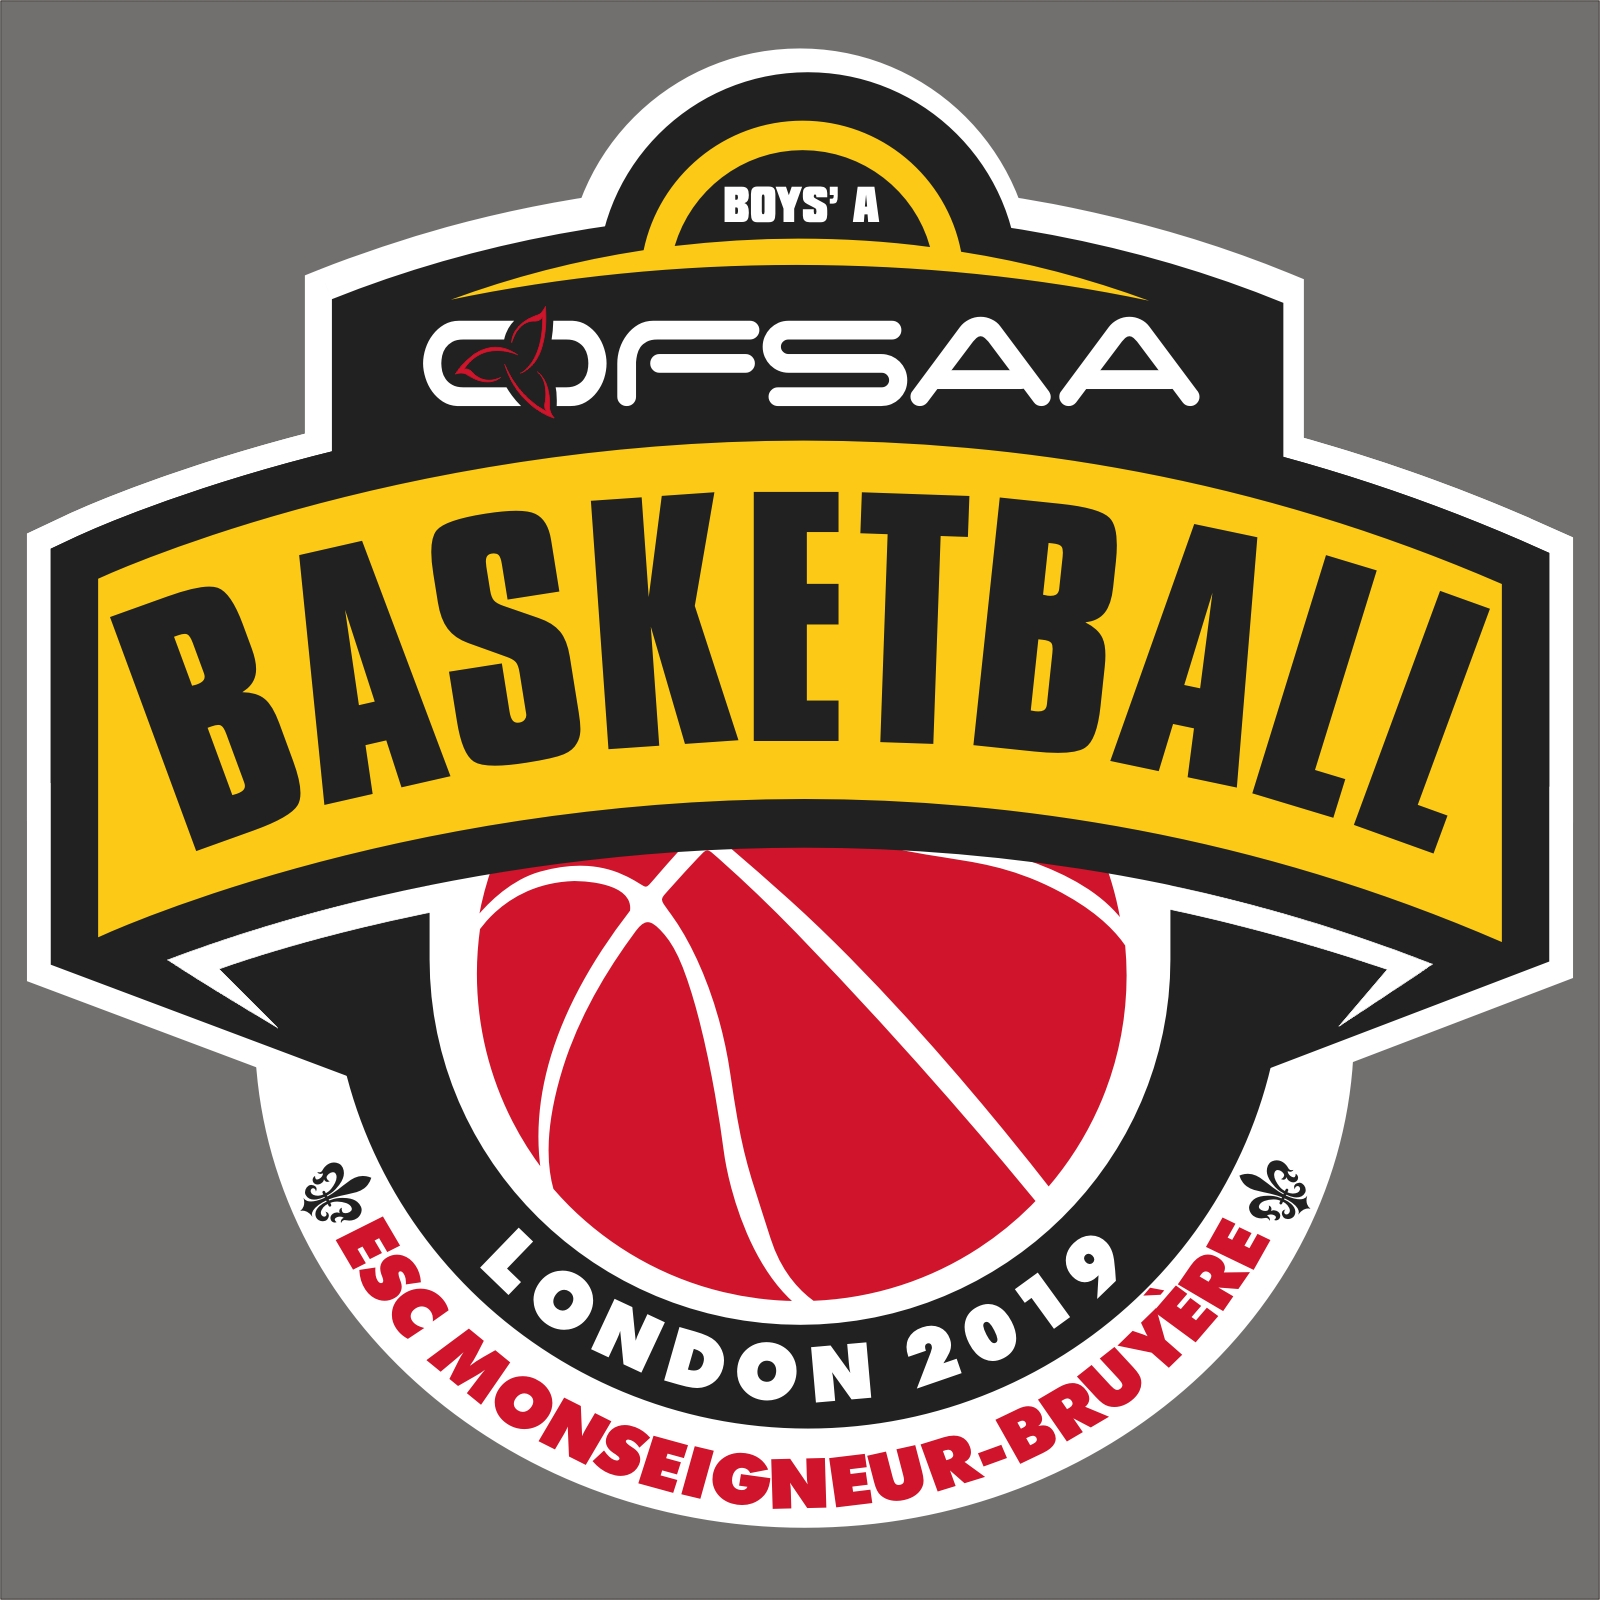 2019 Boys A Basketball logo grey.jpg